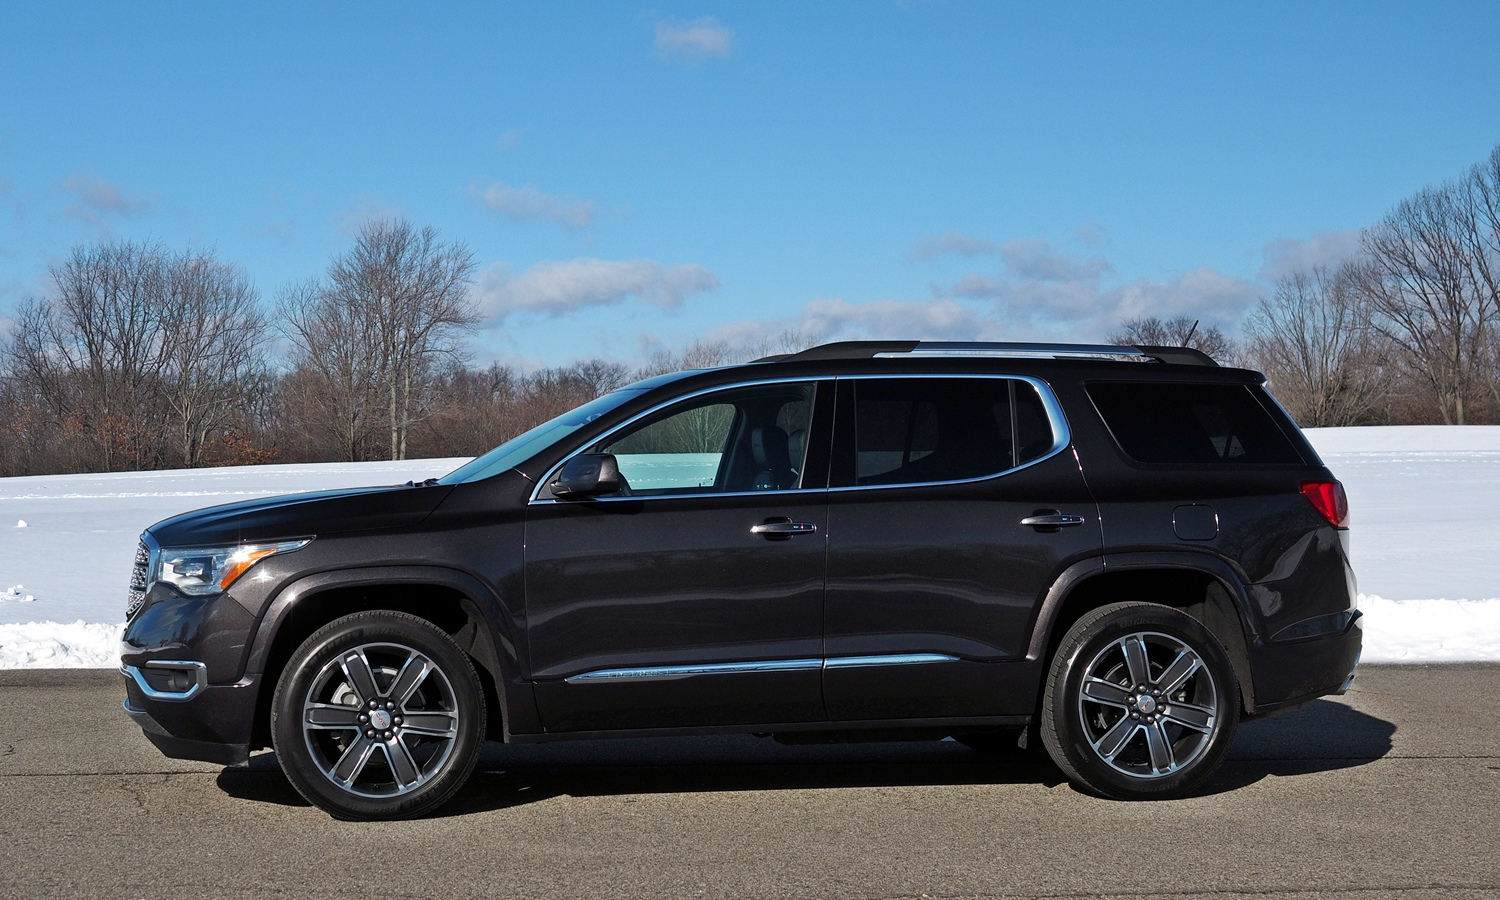 GMC Acadia Photos: 2017 GMC Acadia side view